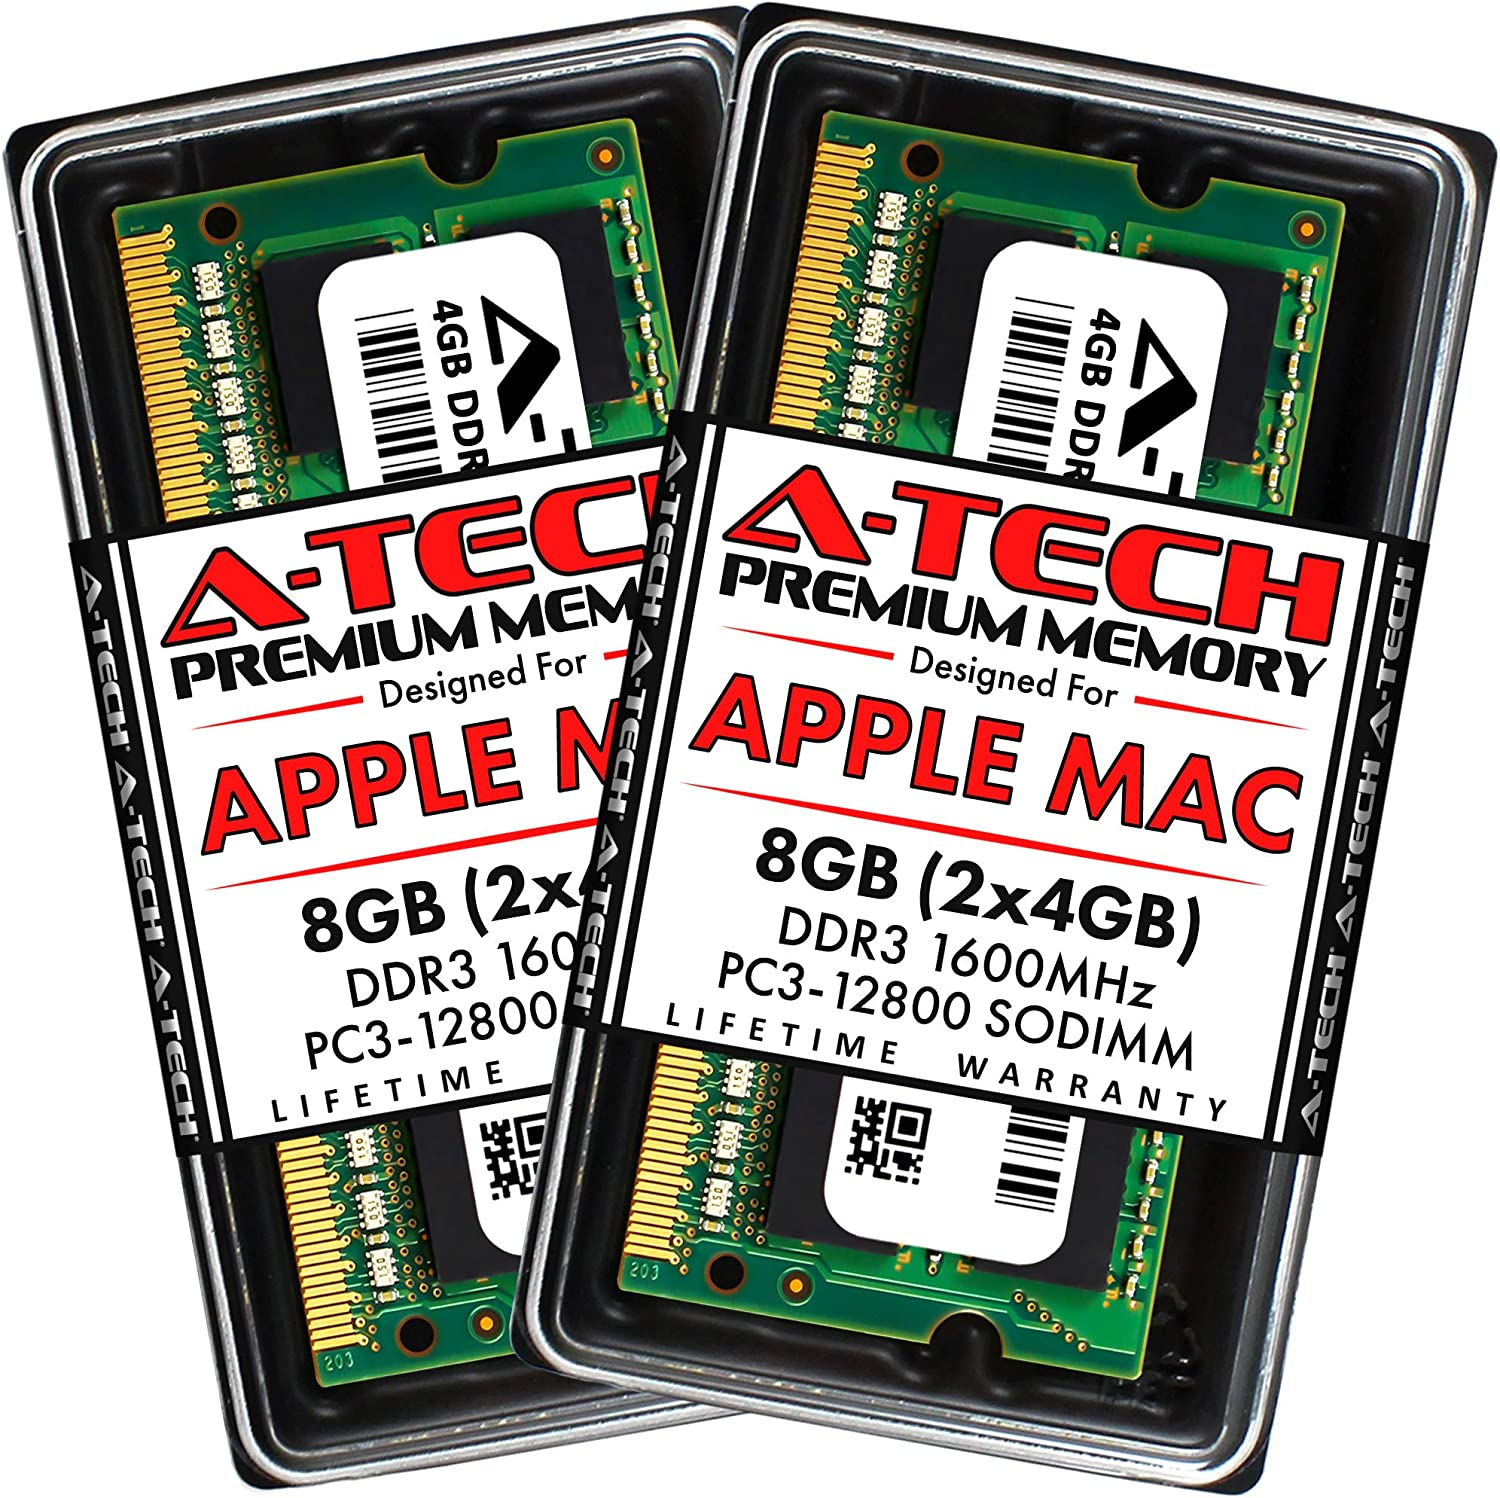 A-Tech 8GB Kit (2x4GB) DDR3 1600MHz RAM for Apple MacBook Pro (Mid 2012), iMac (Late 2012, Early/Late 2013, Late 2014, Mid 2015), Mac Mini (Late 2012) | PC3-12800 SODIMM 204-Pin Memory Upgrade